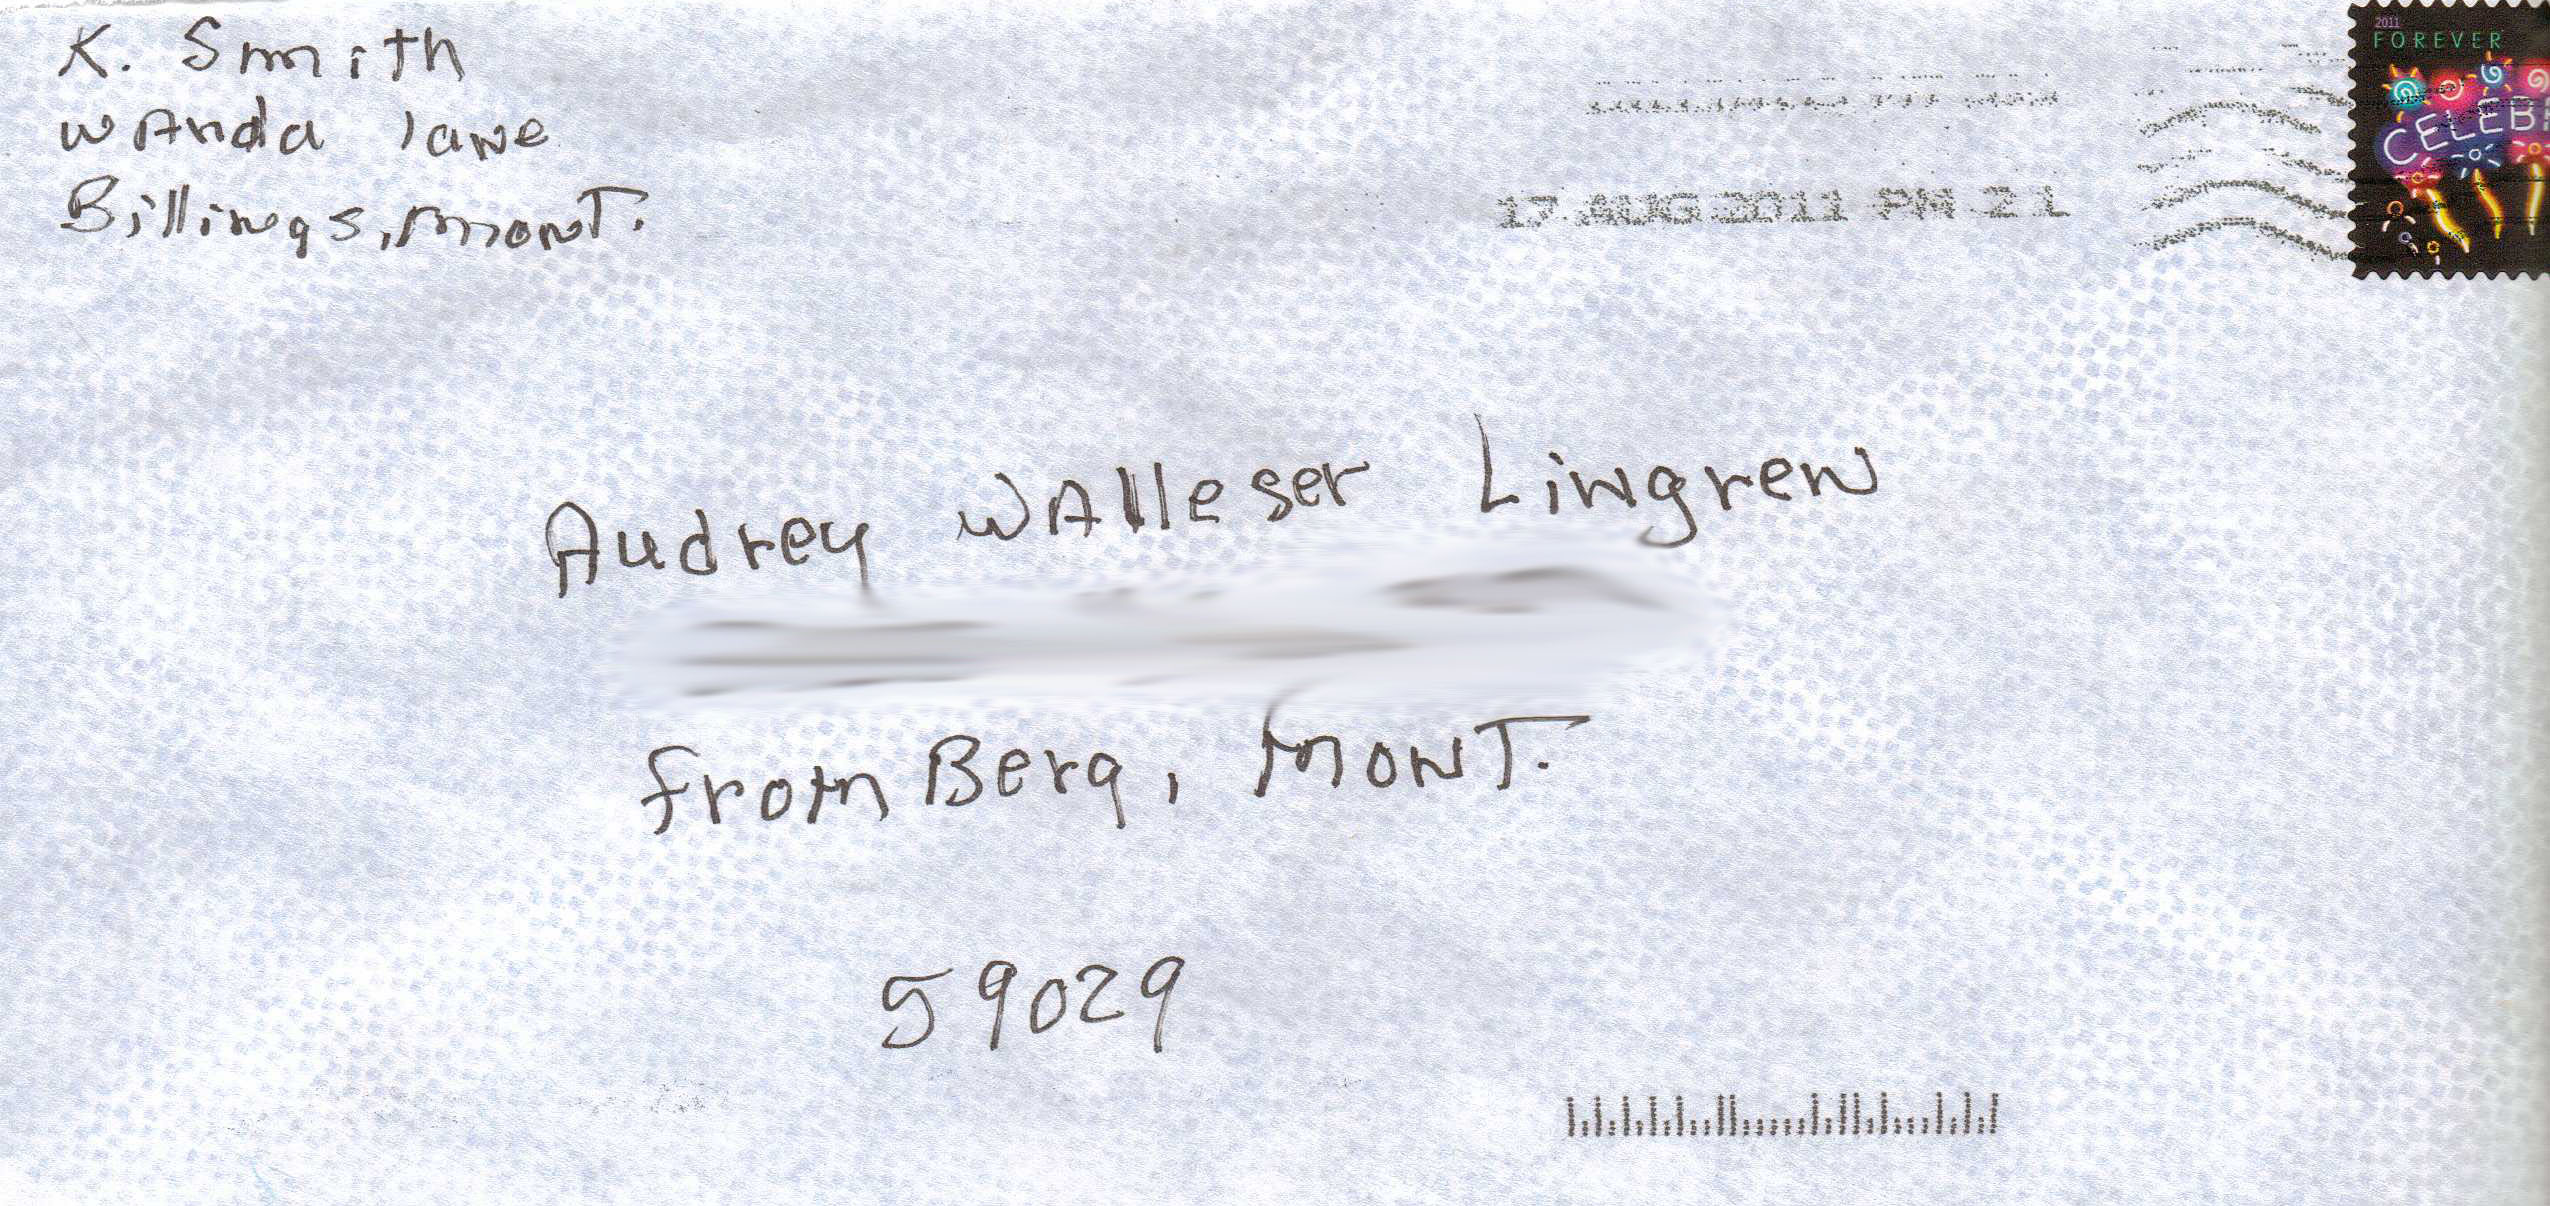 First Authoring Letters To Editor Montanafesto How To Fill Out Envelope Uk How To Fill Out Envelope Mail Advertisements Perils photos How To Fill Out Envelope